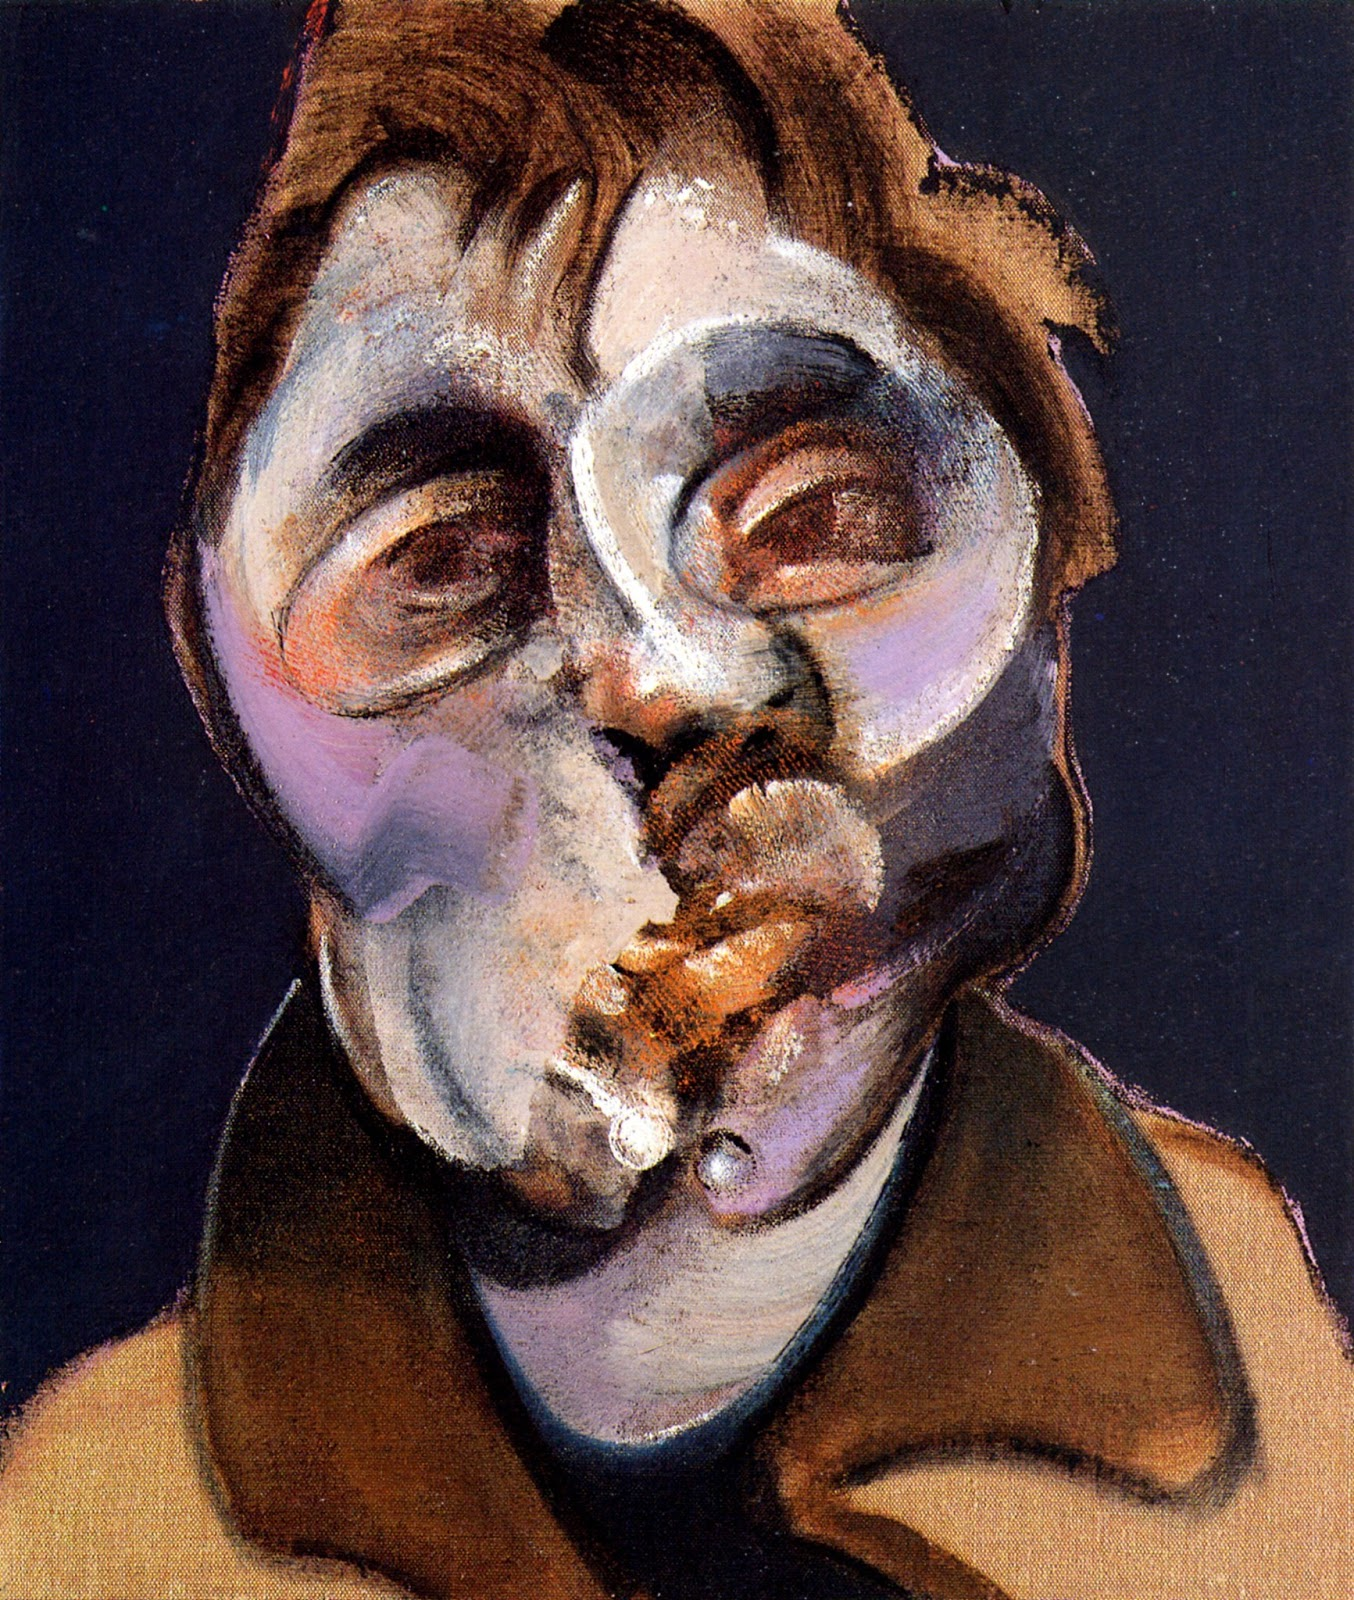 francis bacon the portraits Artwork page for 'study for a portrait', francis bacon, 1952 francis bacon painted directly onto the raw, unprimed side of the canvas and here emphasised the texture further by rubbing sand into the paint.